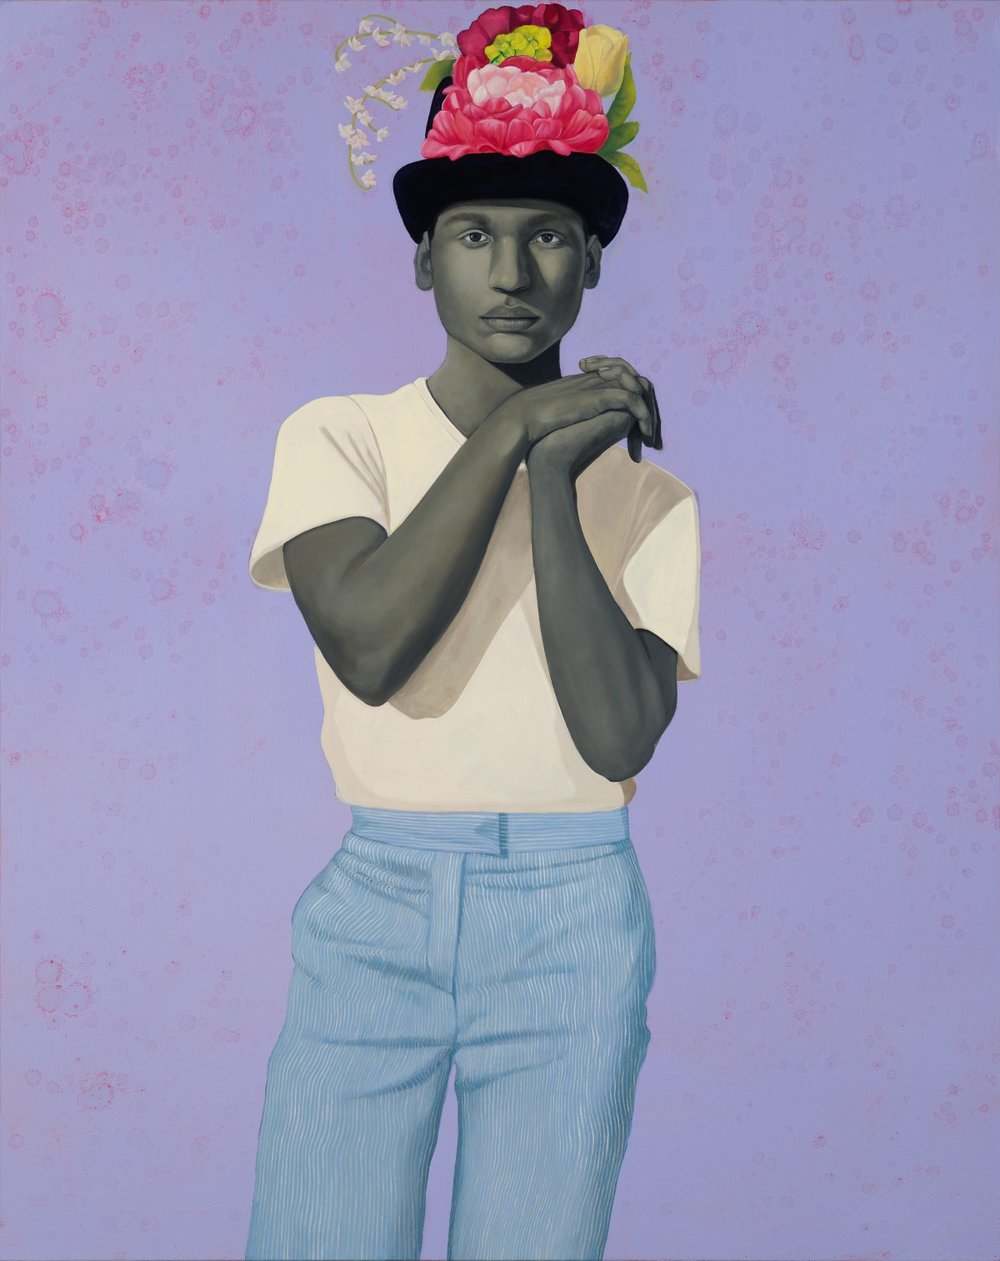 Amy Sherald, Try on dreams until I find the one that fits me. They all fit me., 2017, oil on canvas. 54 x 43 in. (137.2 x 109.2 cm). Public collection, Kemper Museum of Contemporary Art, Kansas City, MO. Courtesy the artist and Monique Meloche Gallery, Chicago.